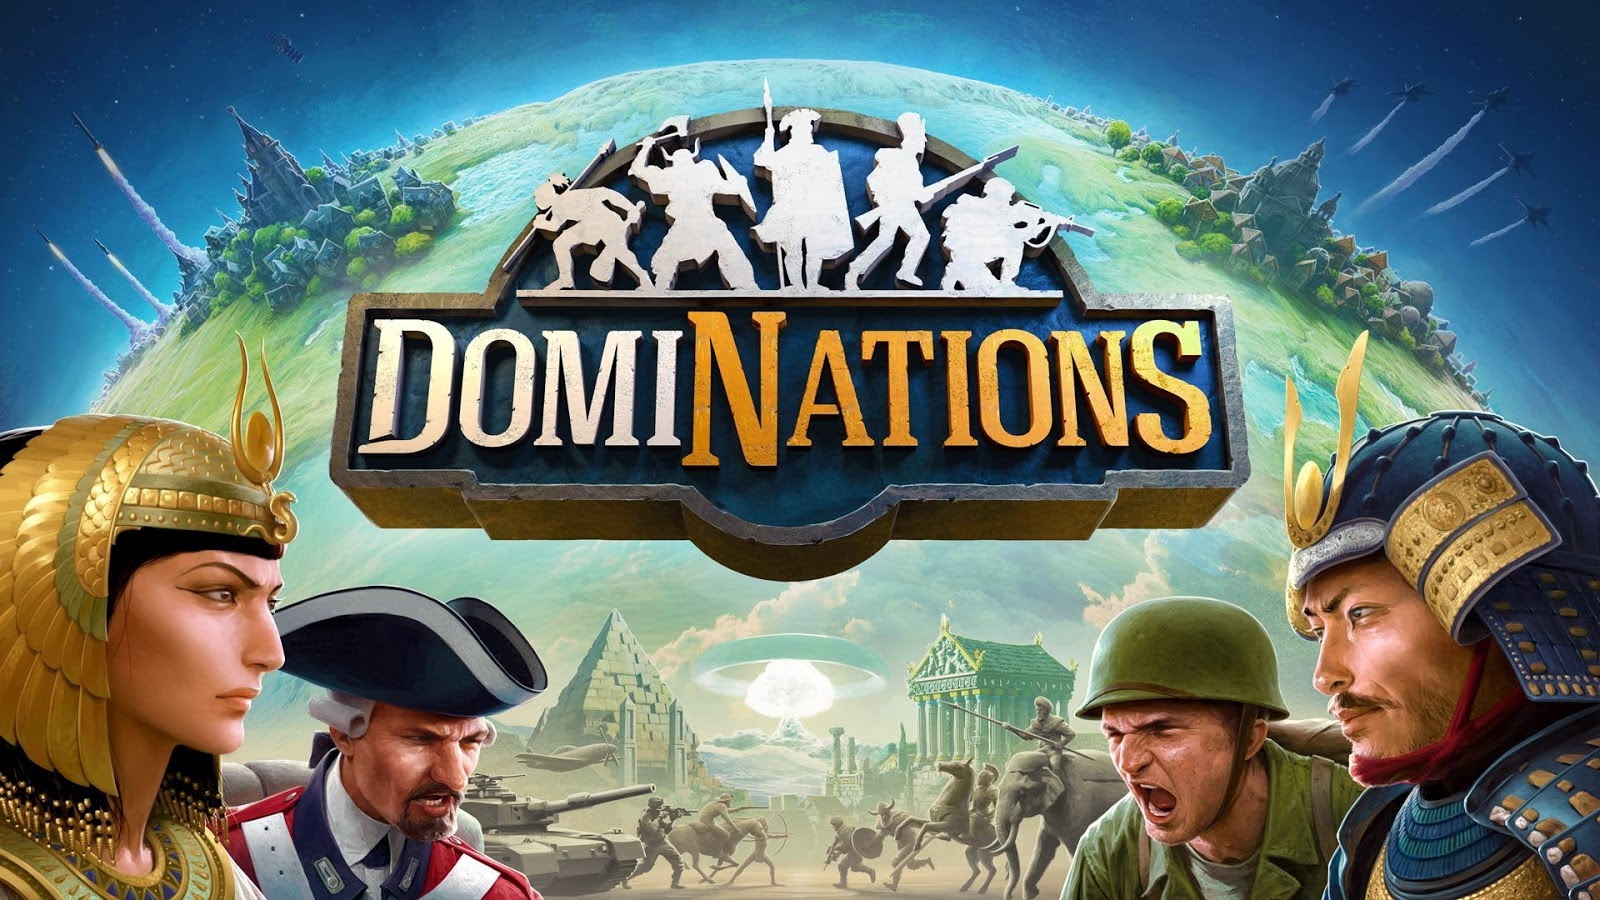 Download DomiNations Game for PC